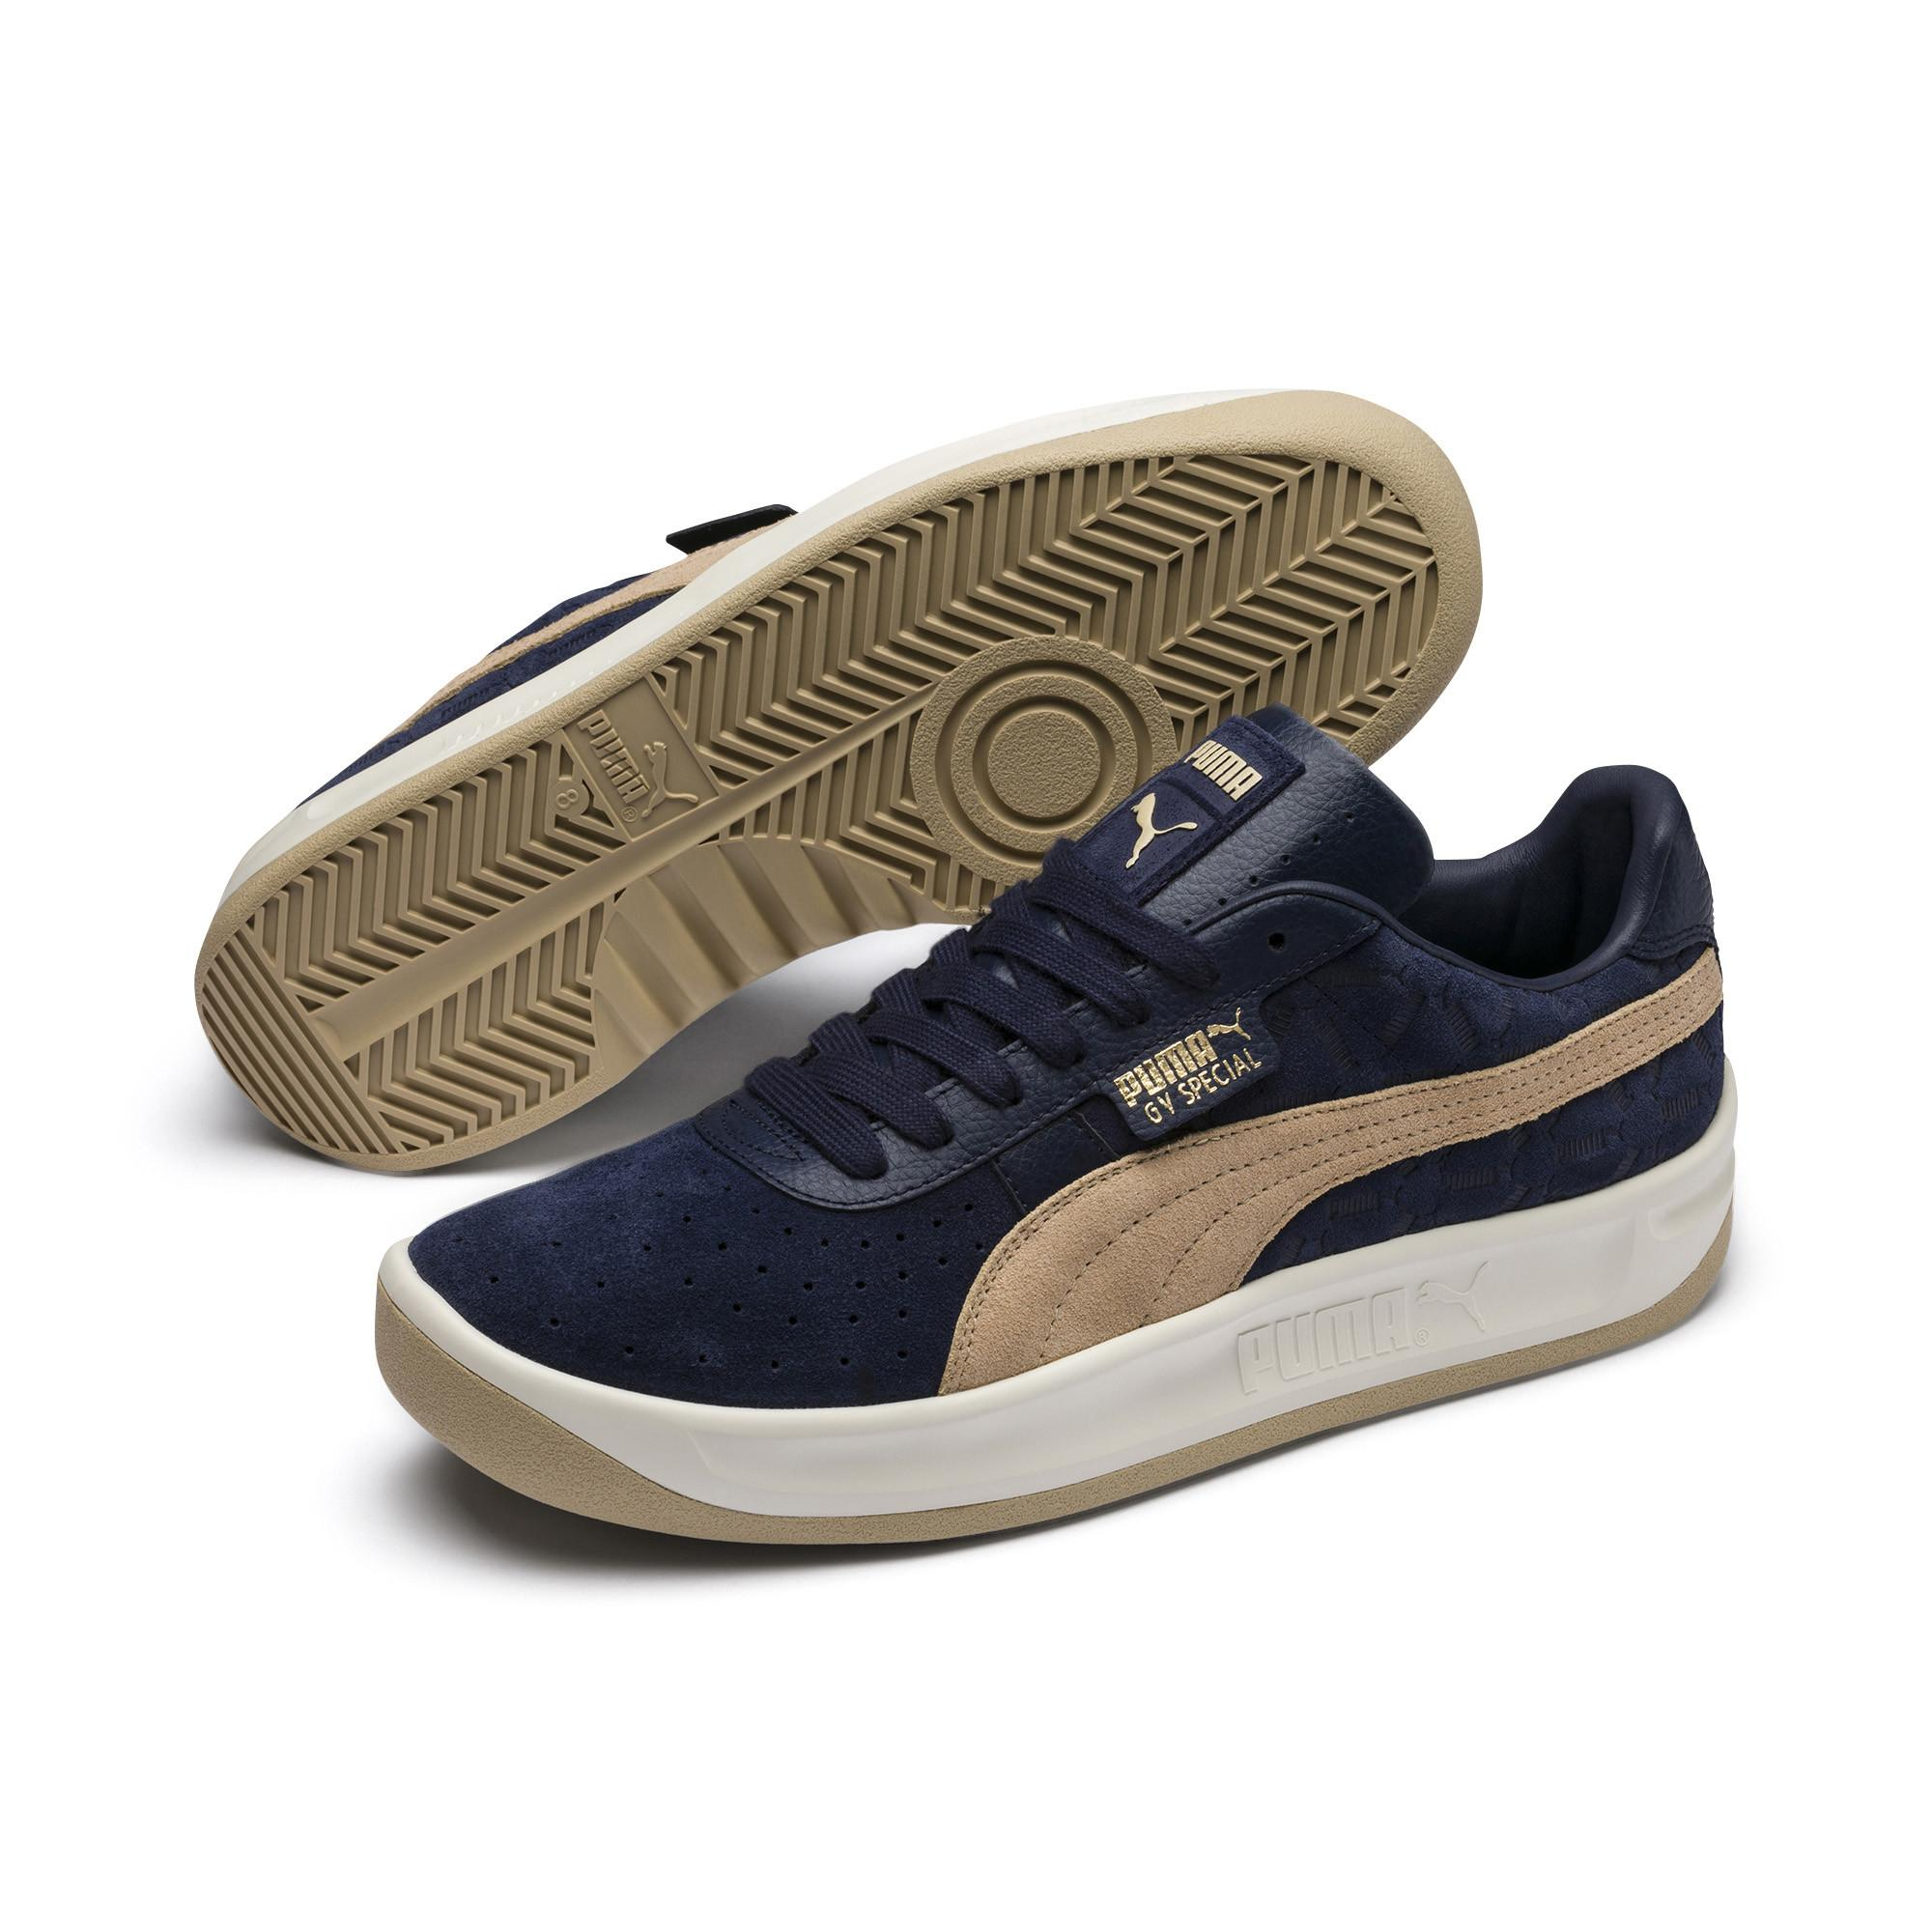 b2b0083df53 PUMA - Blue Gv Special Lux Sneakers for Men - Lyst. View fullscreen